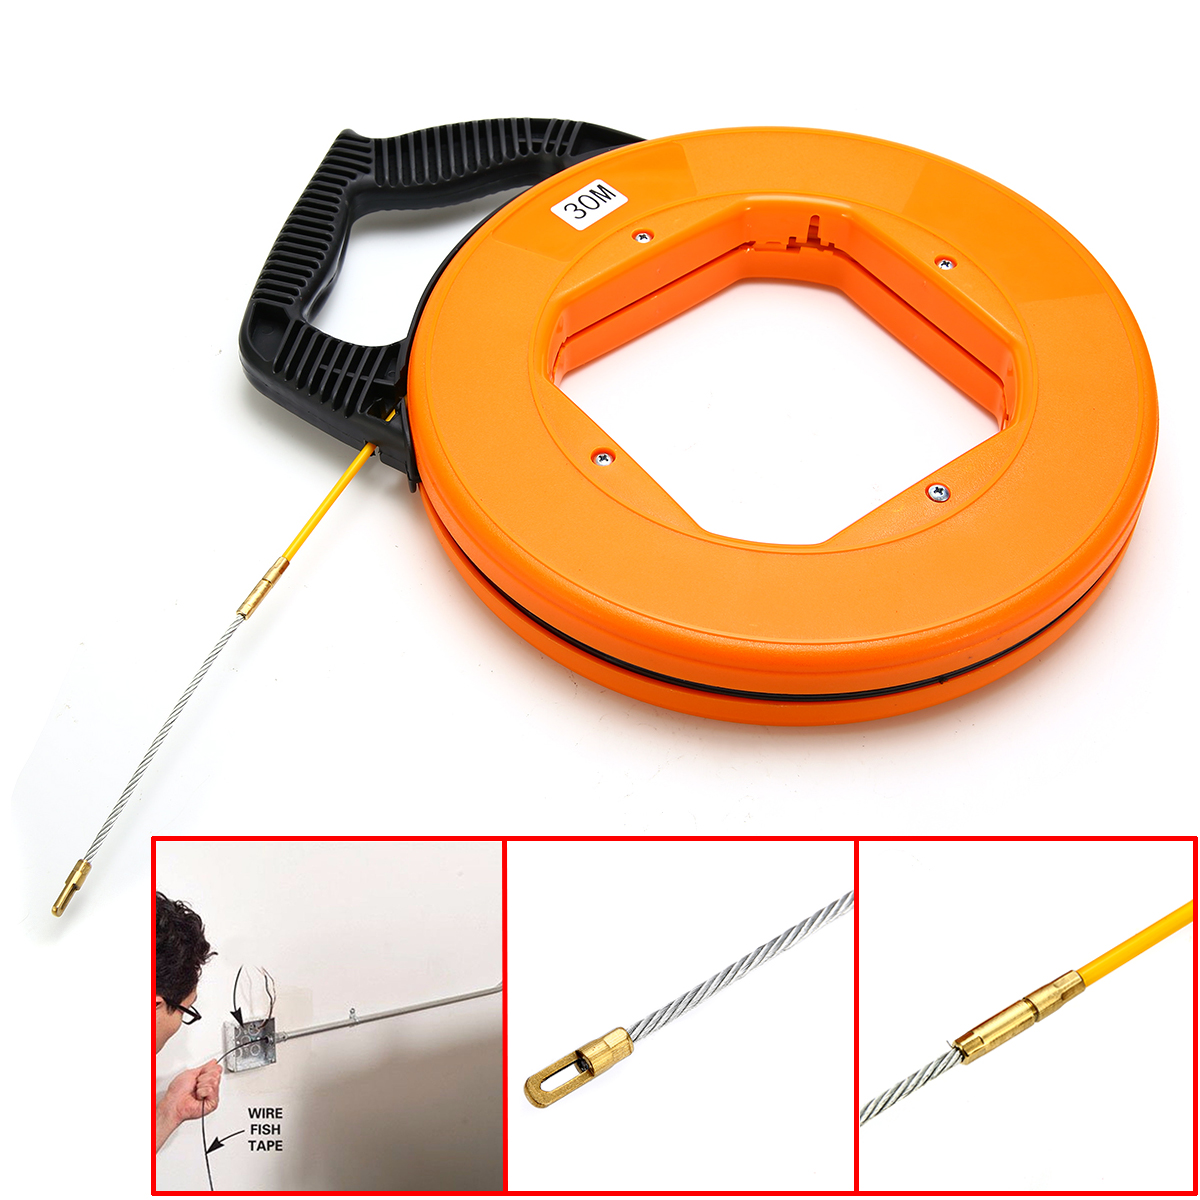 Portable 30 Meter Fiberglass Fish Tape Fishing Tool Reel Puller Conduit Duct Rodder Pulling Wire Cable durable fiberglass fish tape reel puller conduit duct rodder pulling wire cable 30m 4mm for heavy duty wire pulls mayitr